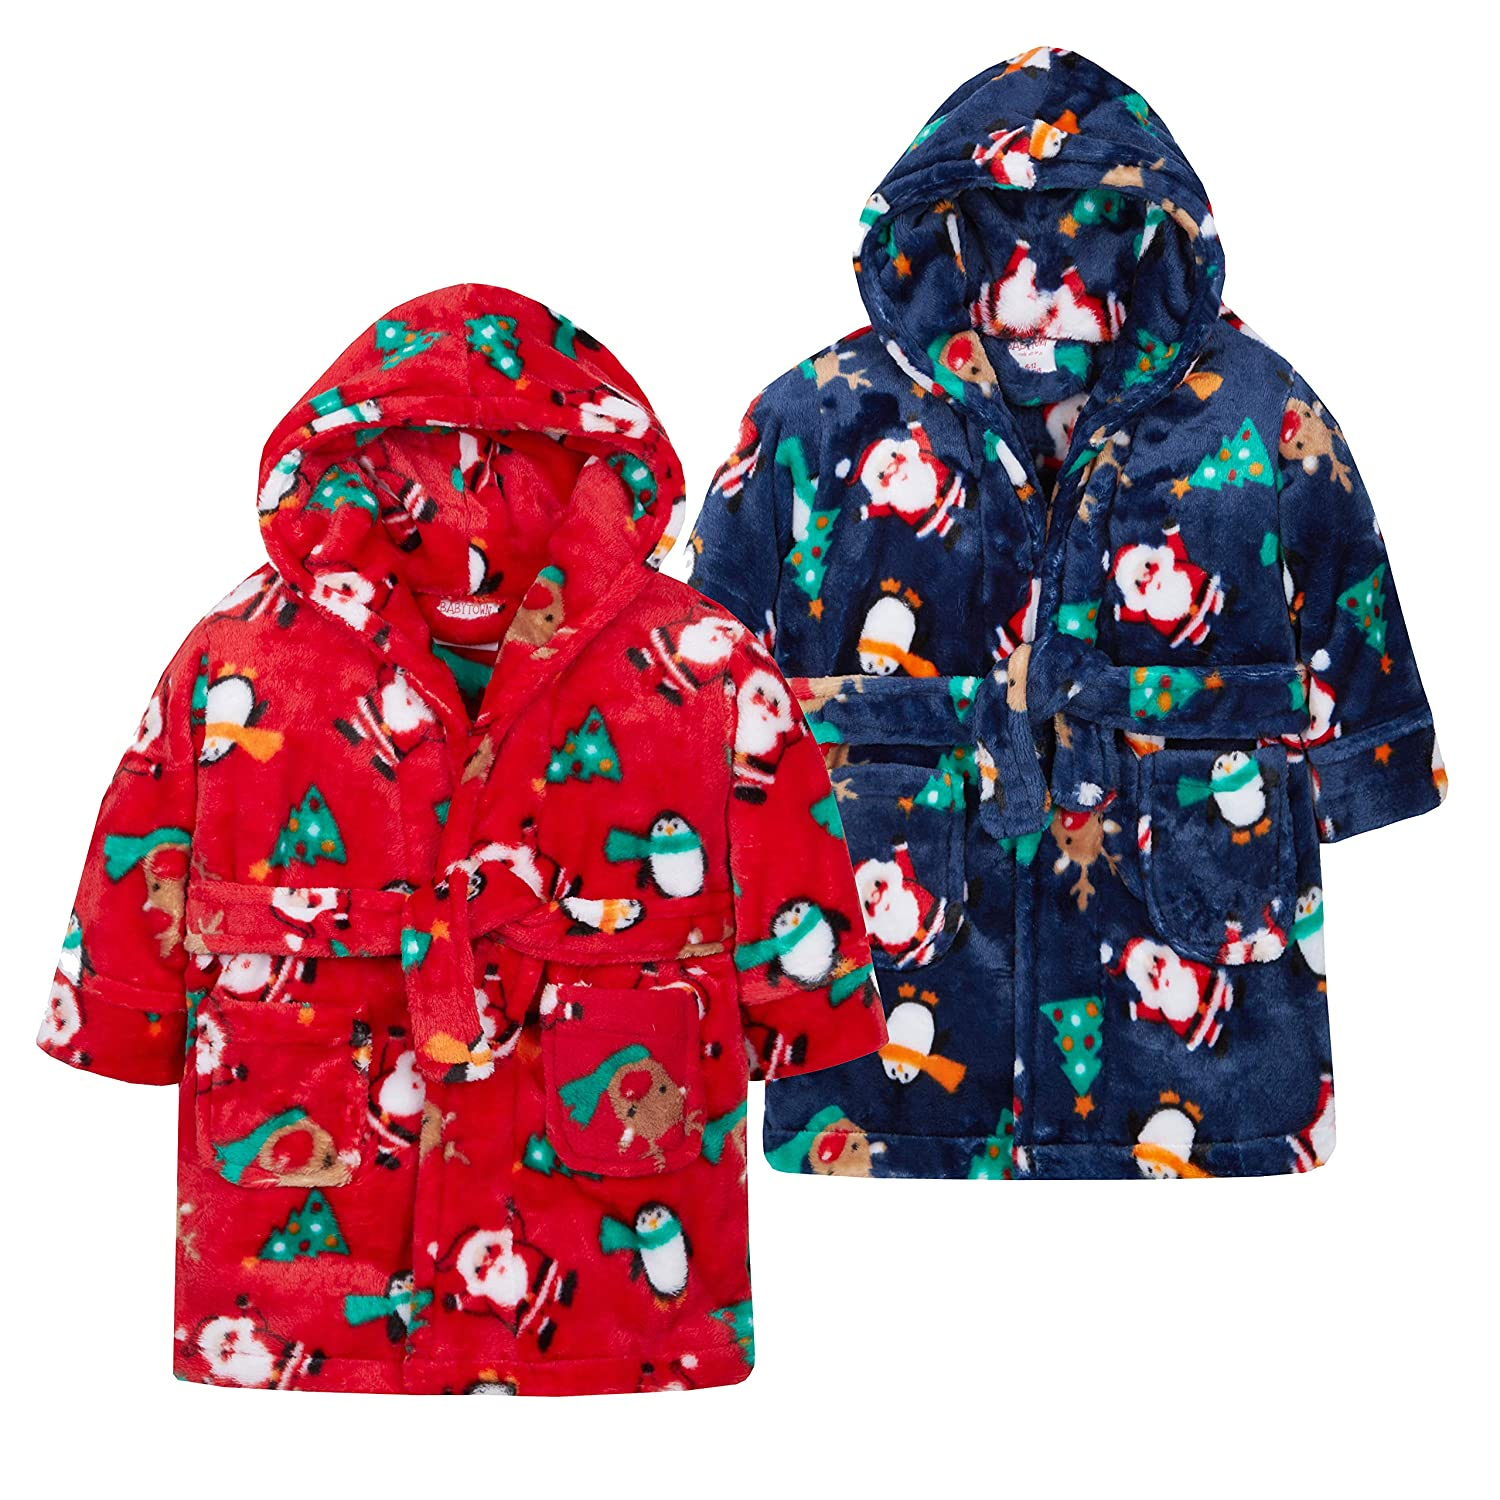 Babytown Baby Boys & Girls Hooded Christmas Dressing Gowns